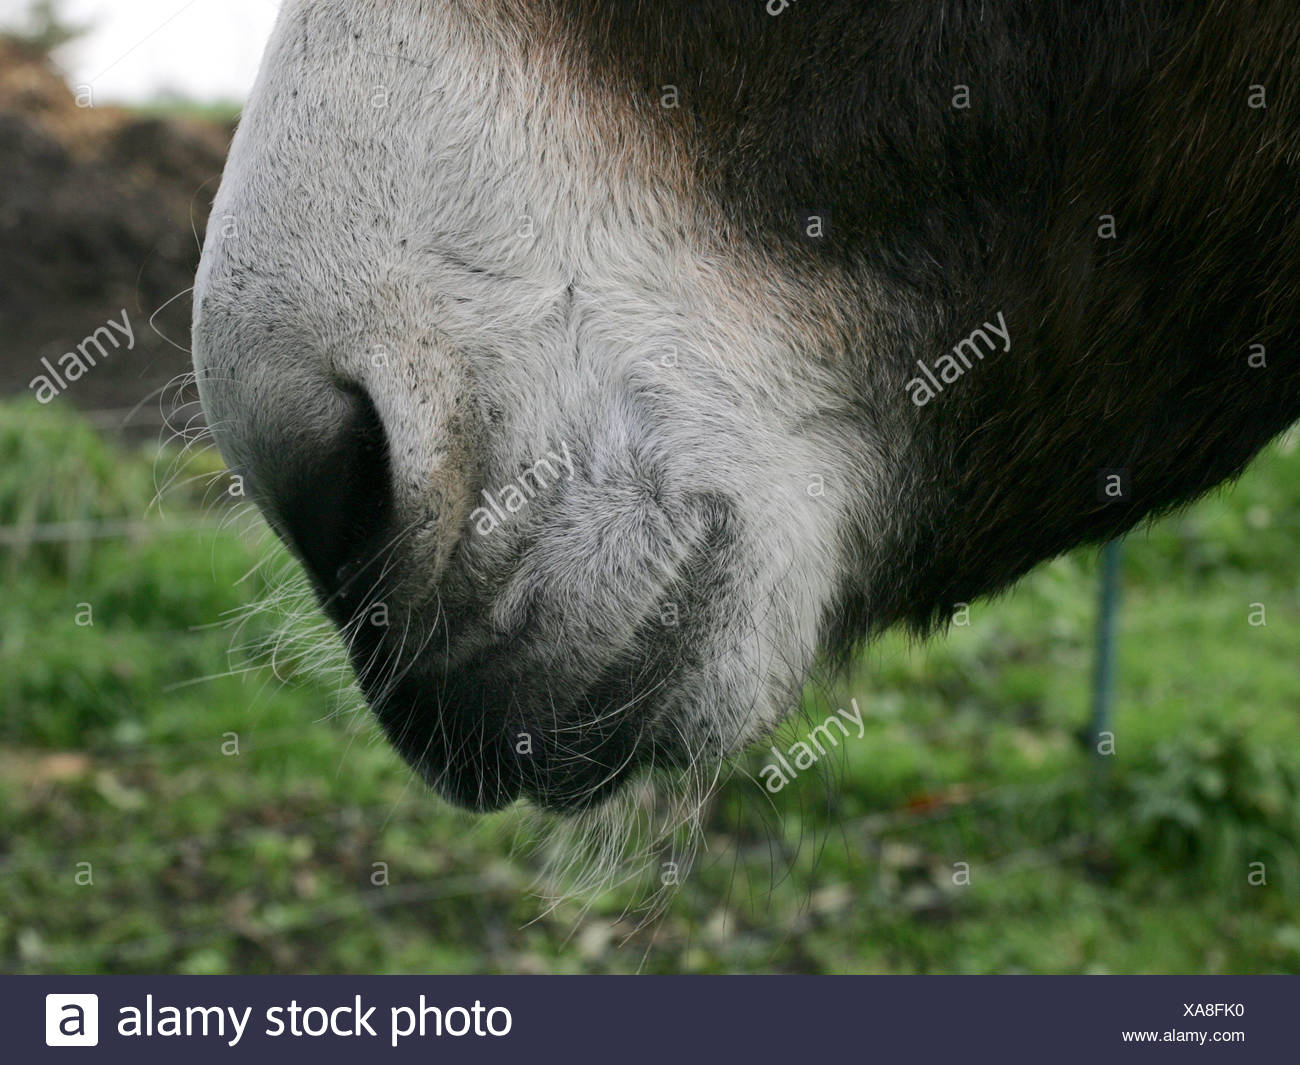 A close-up of a donkey's mouth and nose. Stock Photo